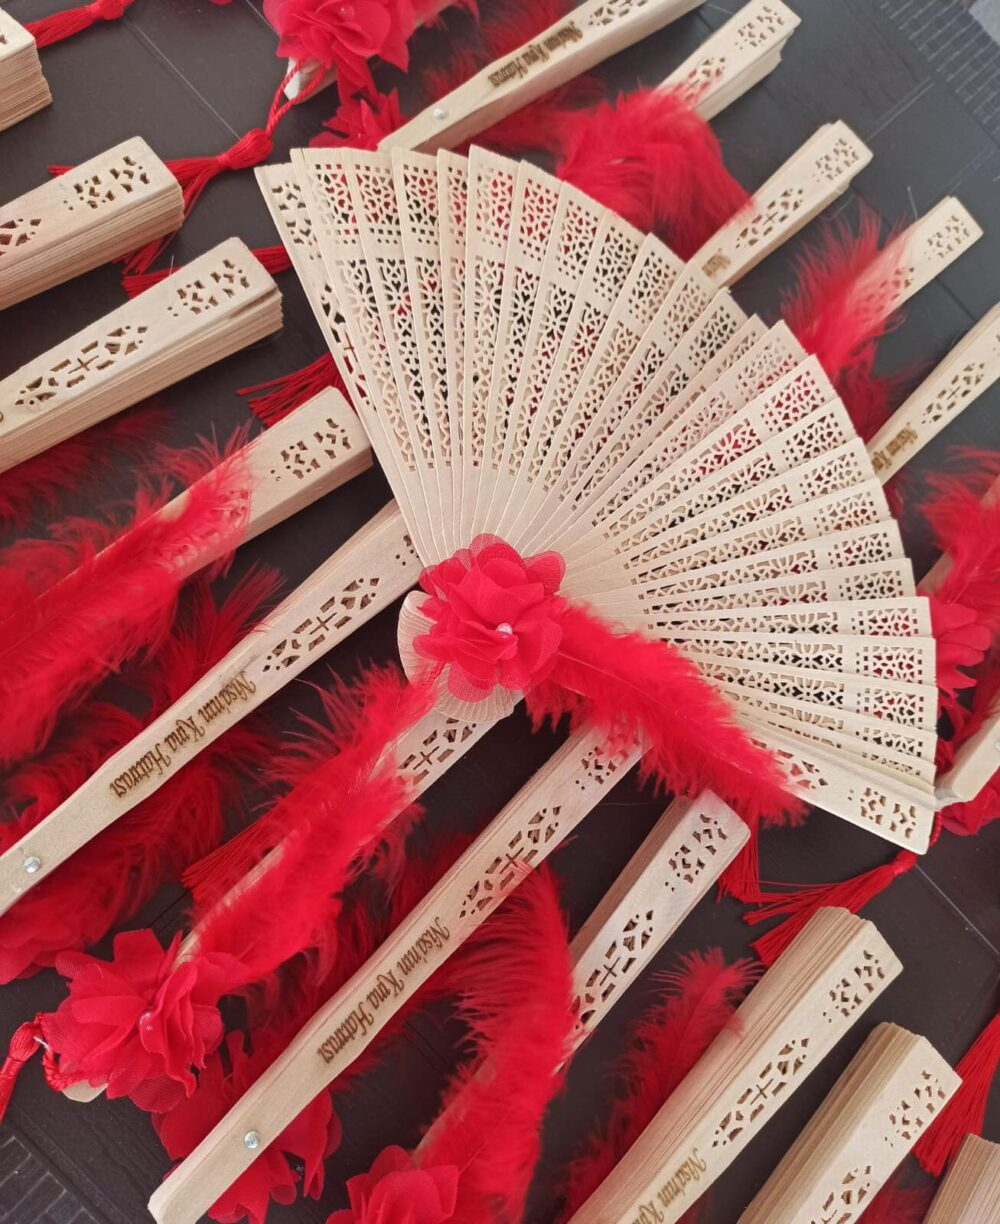 50 Pieces, Wooden Wedding Favor Fan, Natural Wood Fans, Hand Fan For Wedding Gift , Party Favor, Personalized Engraved Text